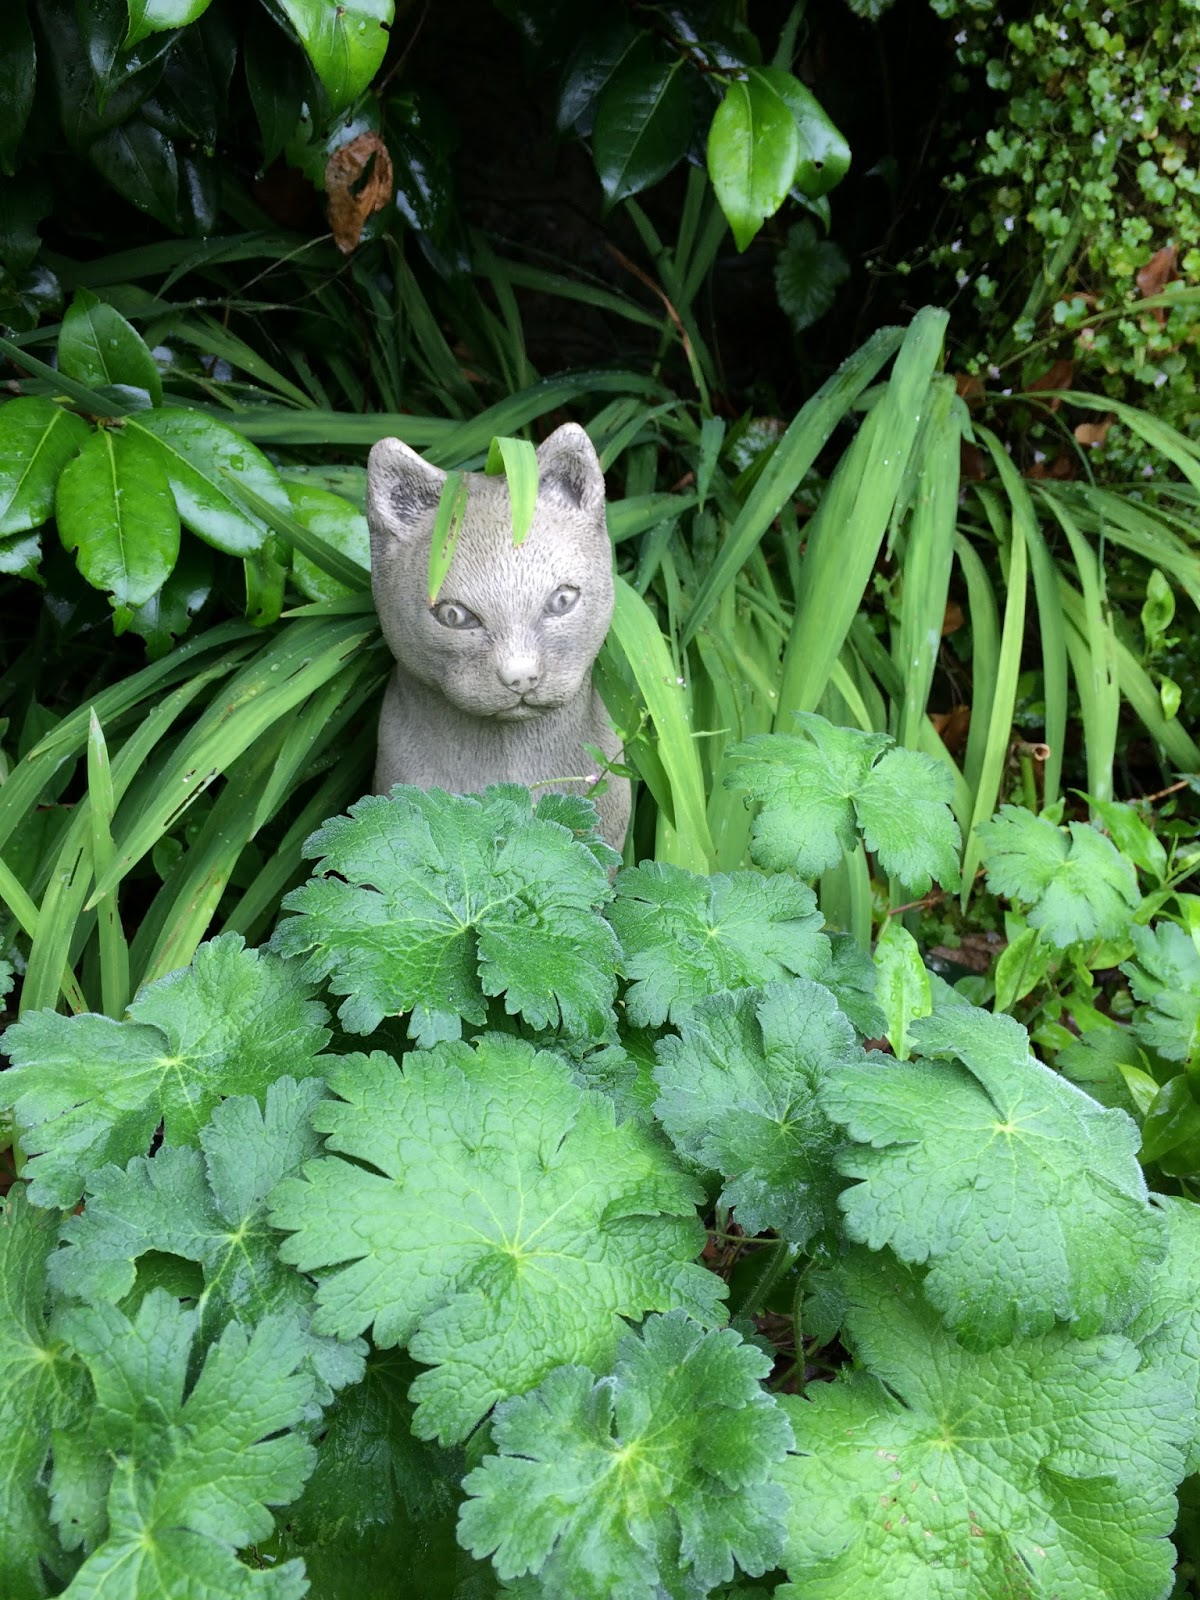 Garden clean up - a statue of a cat in grey stone